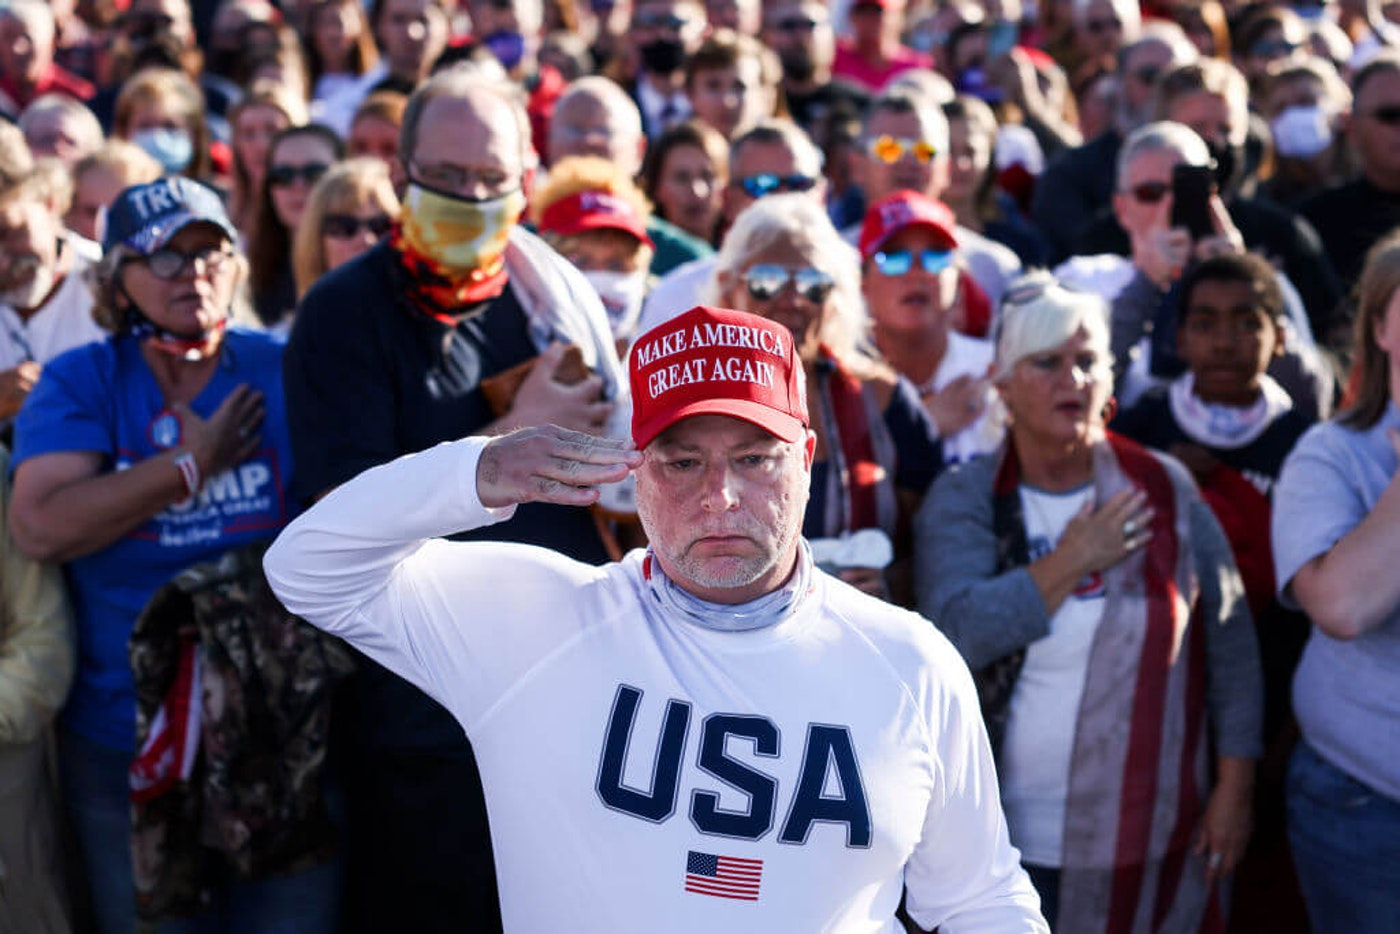 A man salutes during the national anthem as a crowd waits for President Donald Trump to speak at a rally at the Hickory Regional Airport on November 1, 2020 in Hickory, North Carolina. (Photo by Michael Ciaglo/Getty Images)